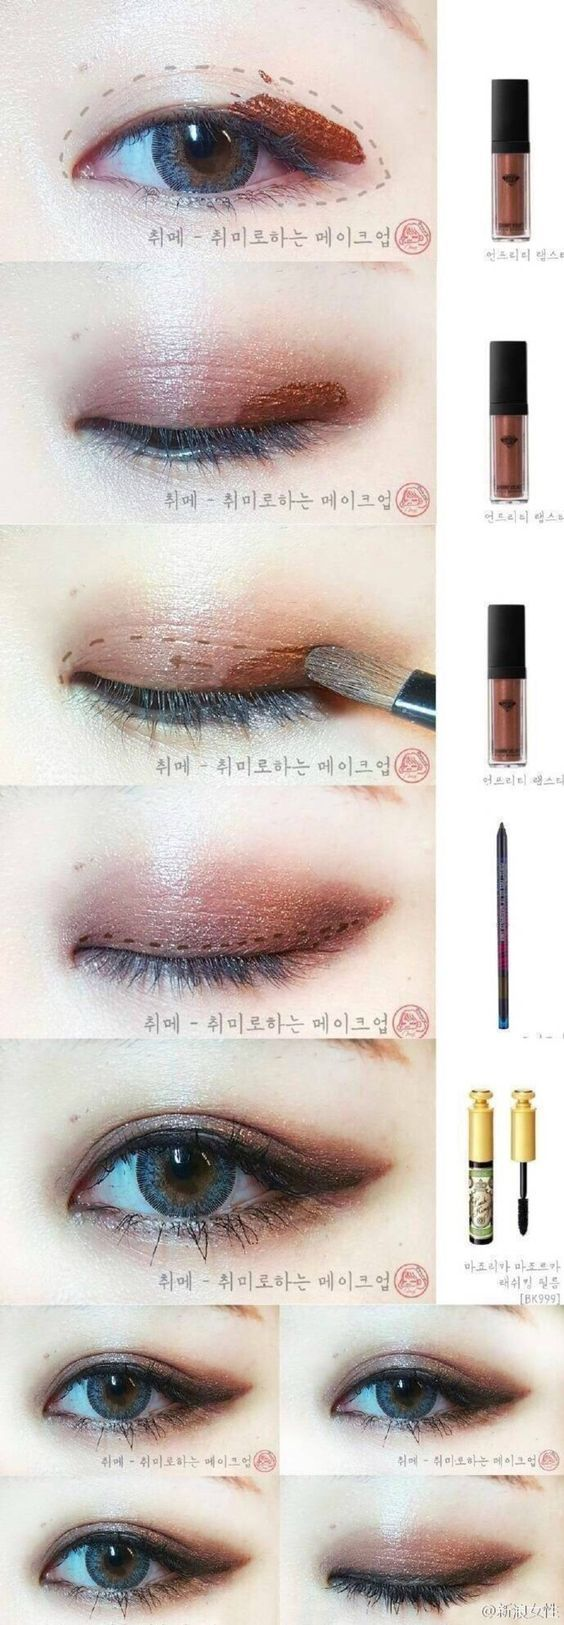 Korean style make up #eye make up #idea: